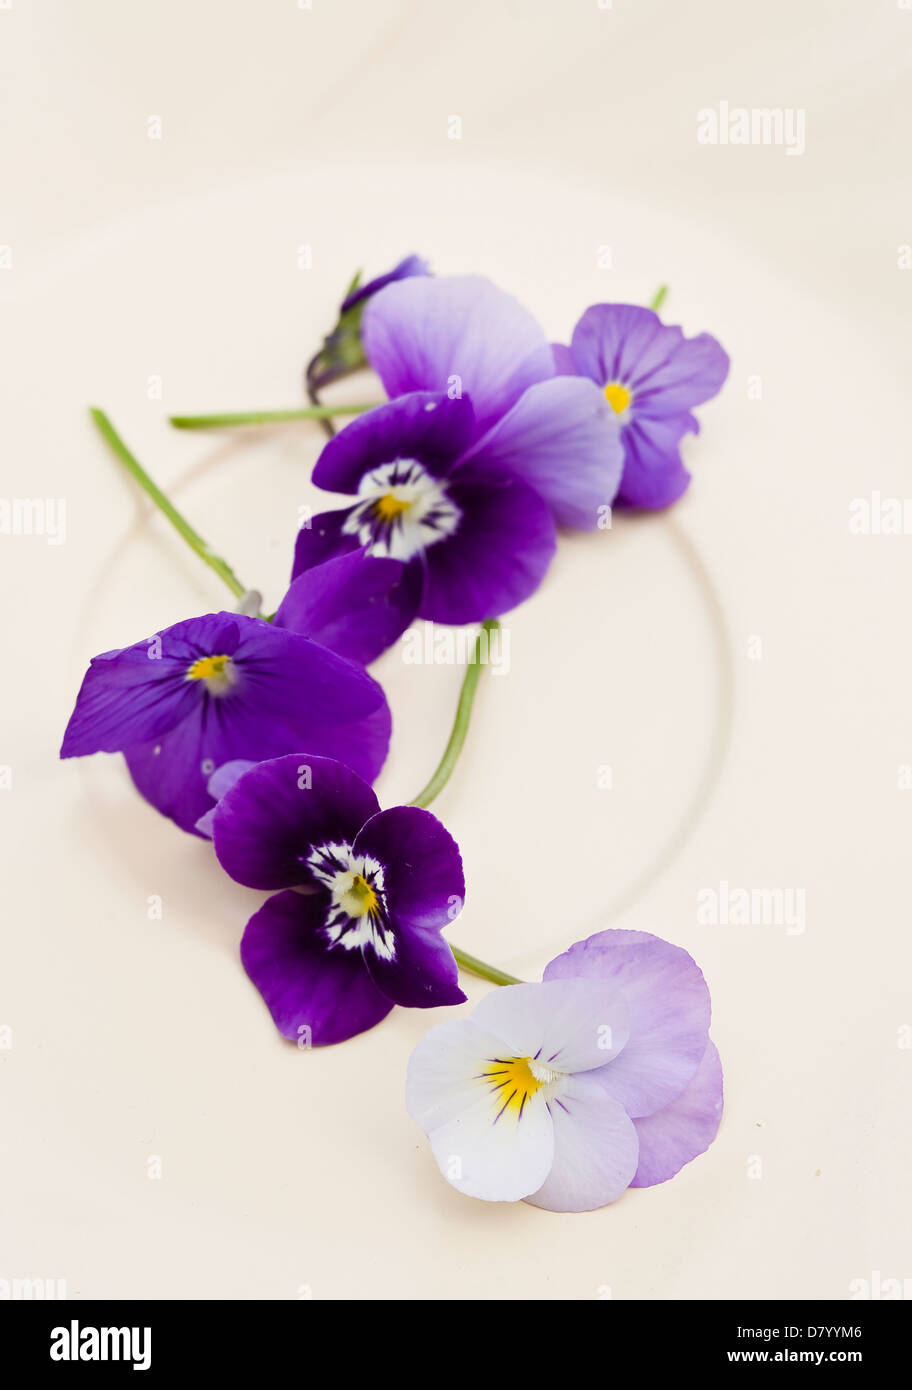 Purple edible violas on a white plate. - Stock Image